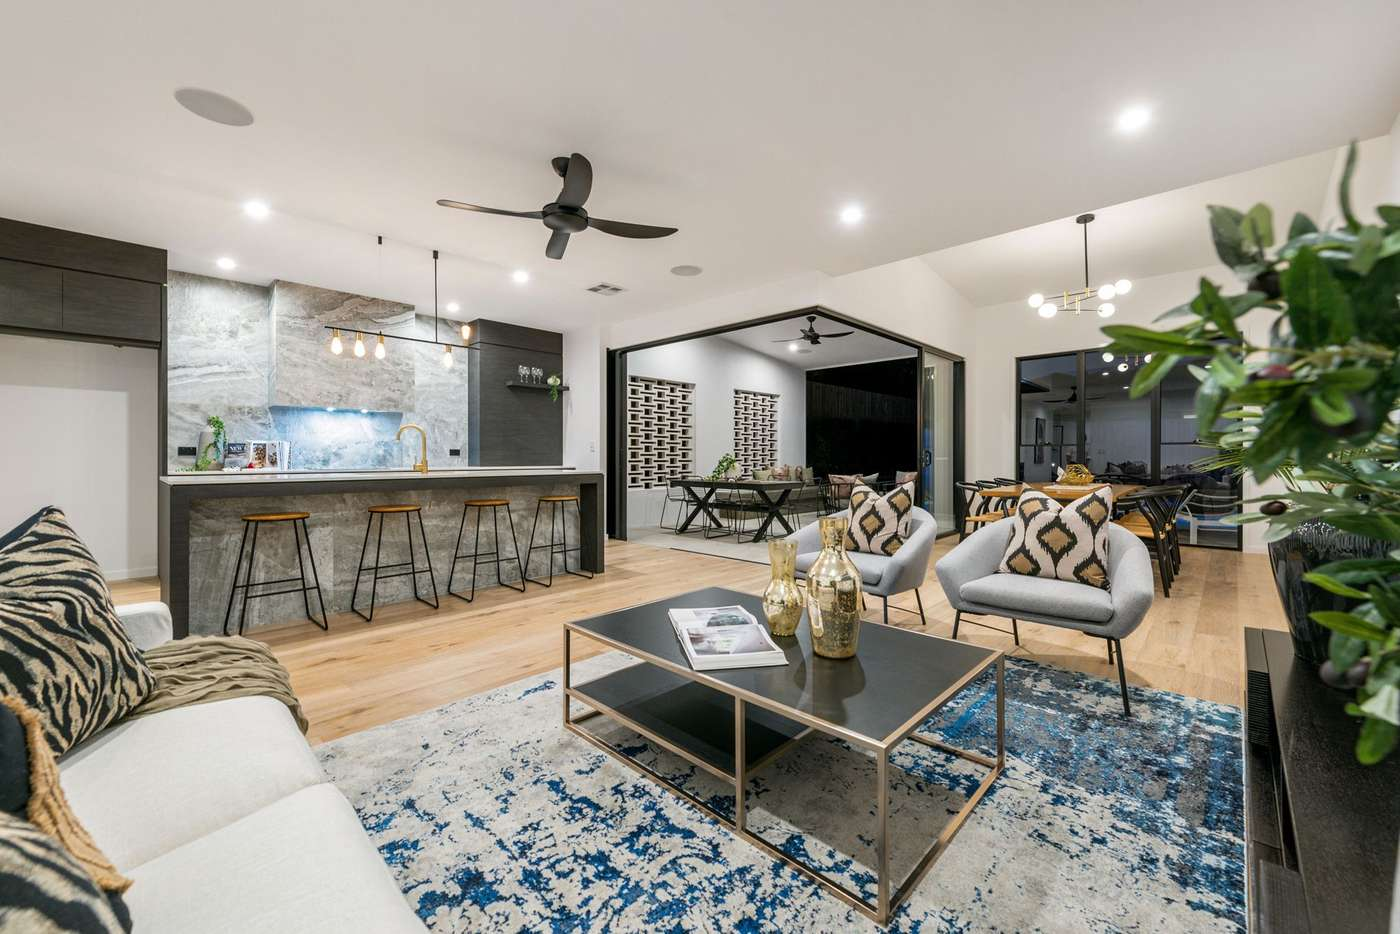 Fifth view of Homely house listing, 4B Vickers Street, Carina Heights QLD 4152